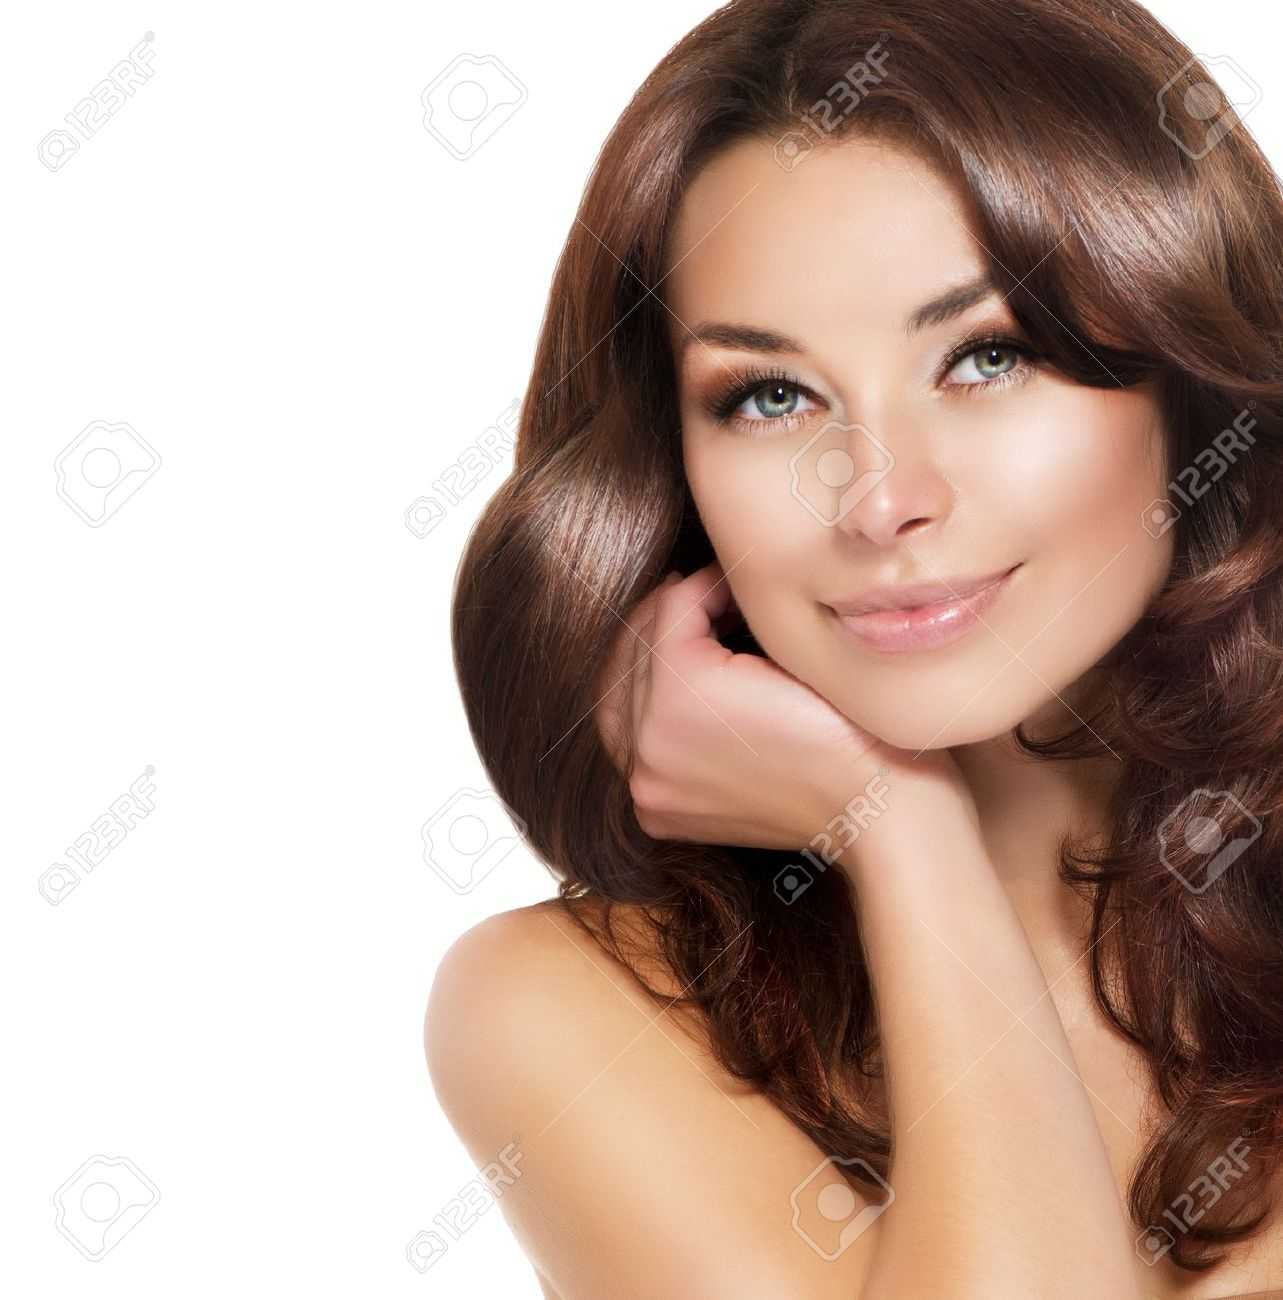 Beautiful Stock Photography healthy Hair Stock Photo